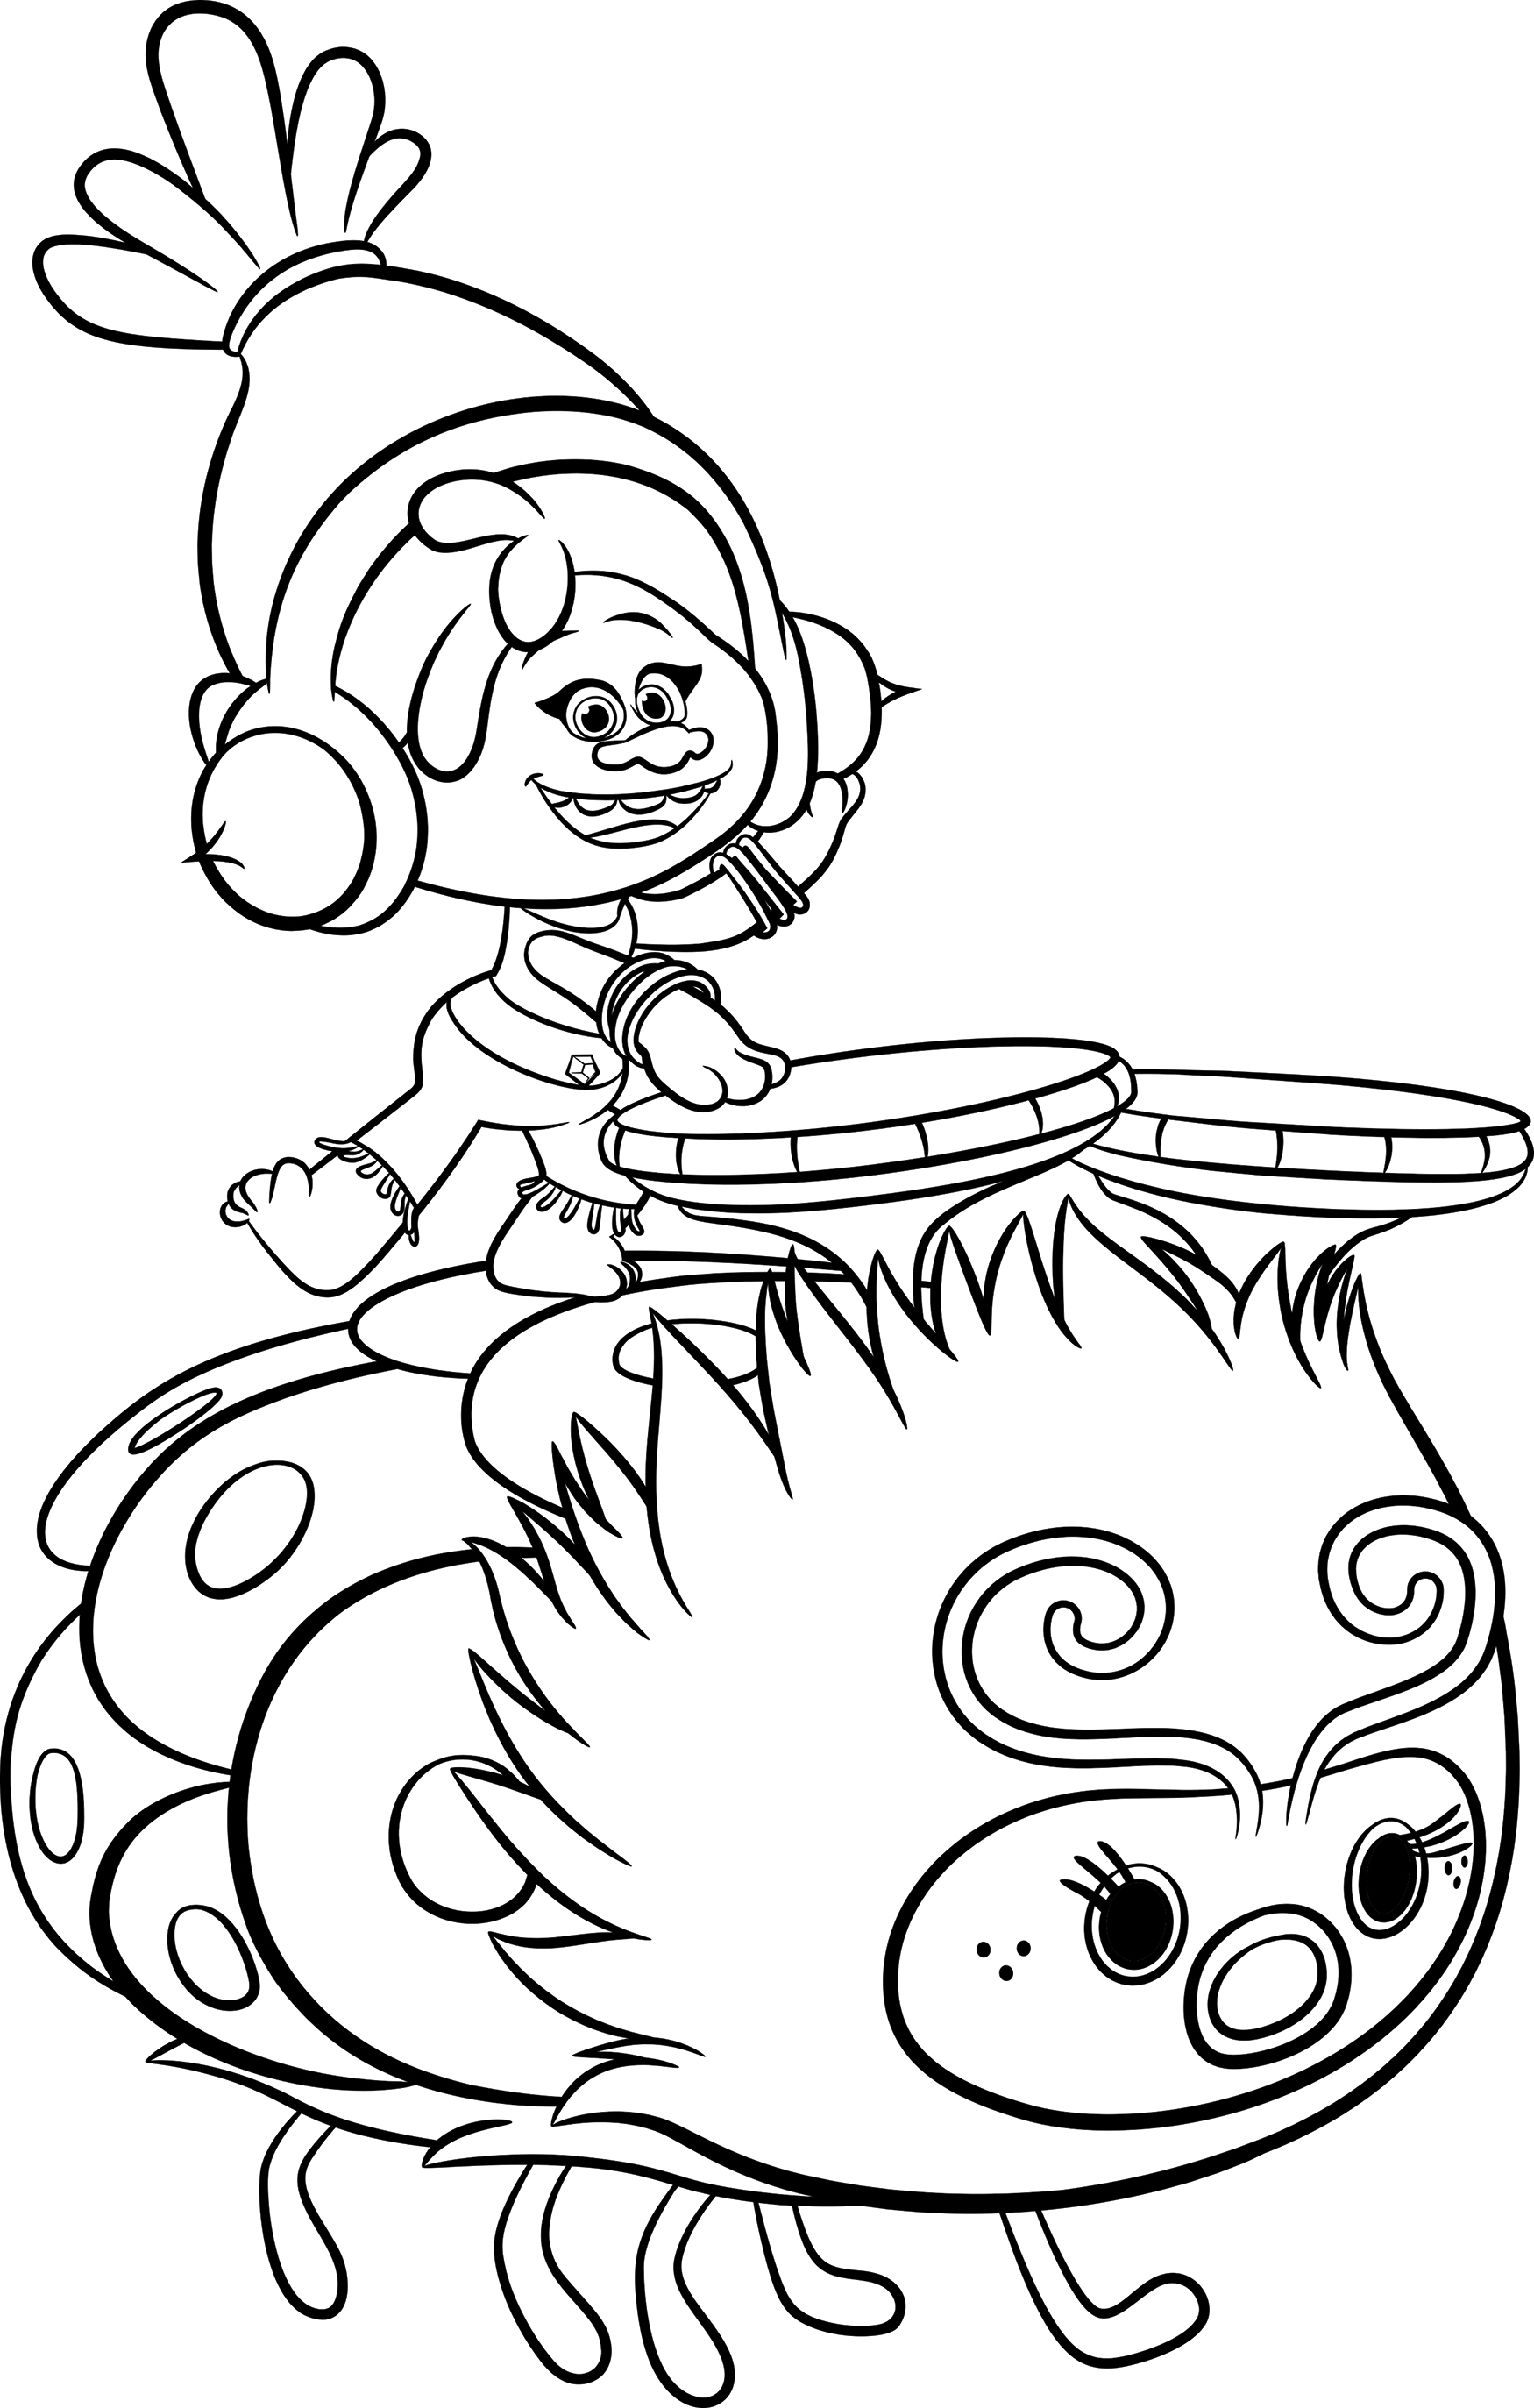 coloring sheet trolls trolls movie coloring pages best coloring pages for kids coloring sheet trolls 1 2